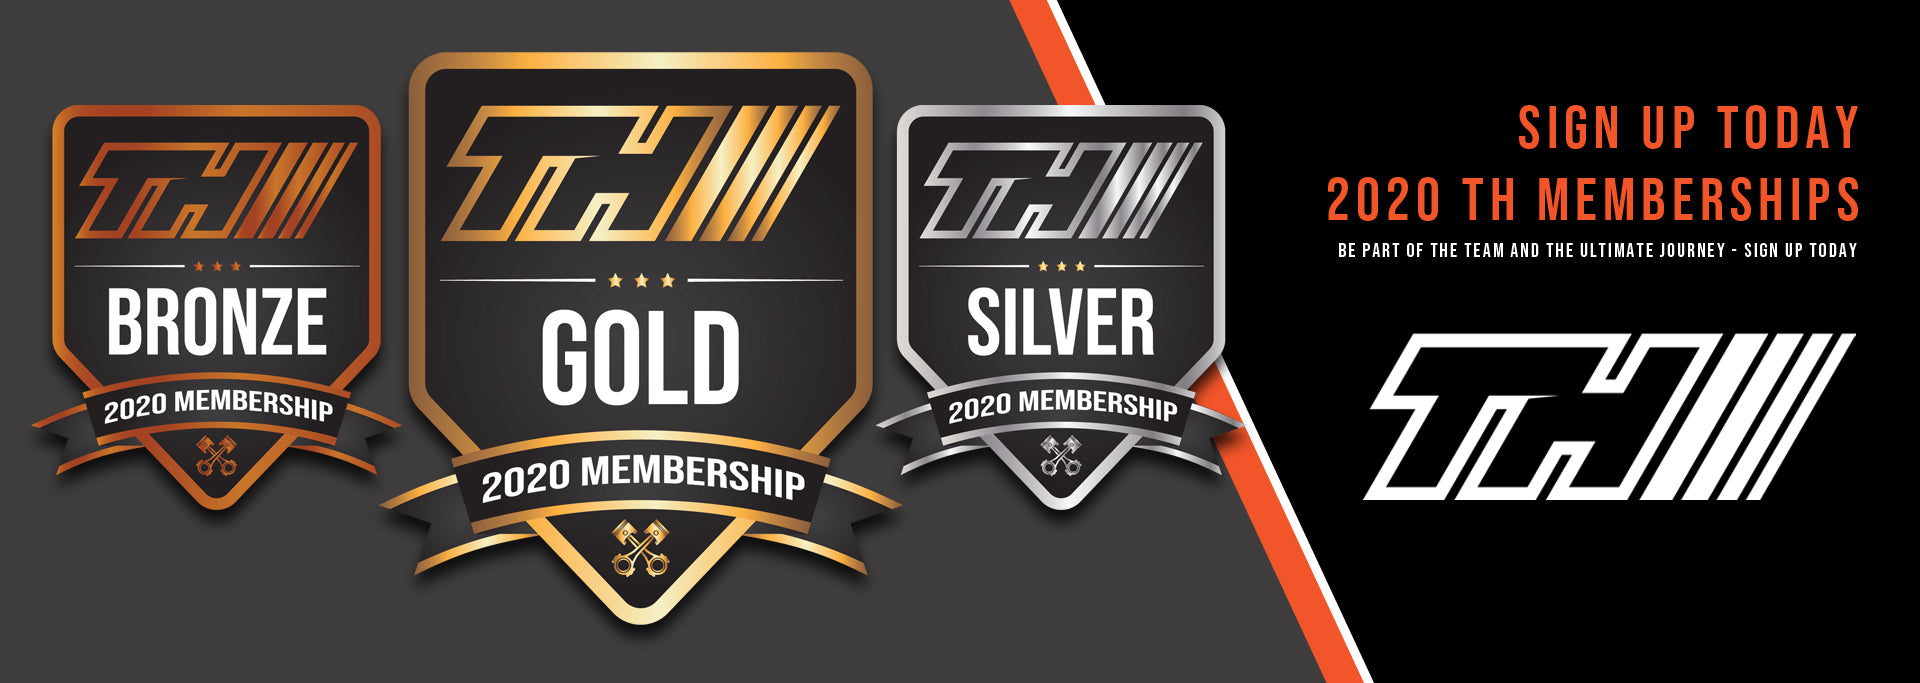 Order Today - 2020 TH Memberships - Be part of the team and the ultimate journey - Sign Up Today